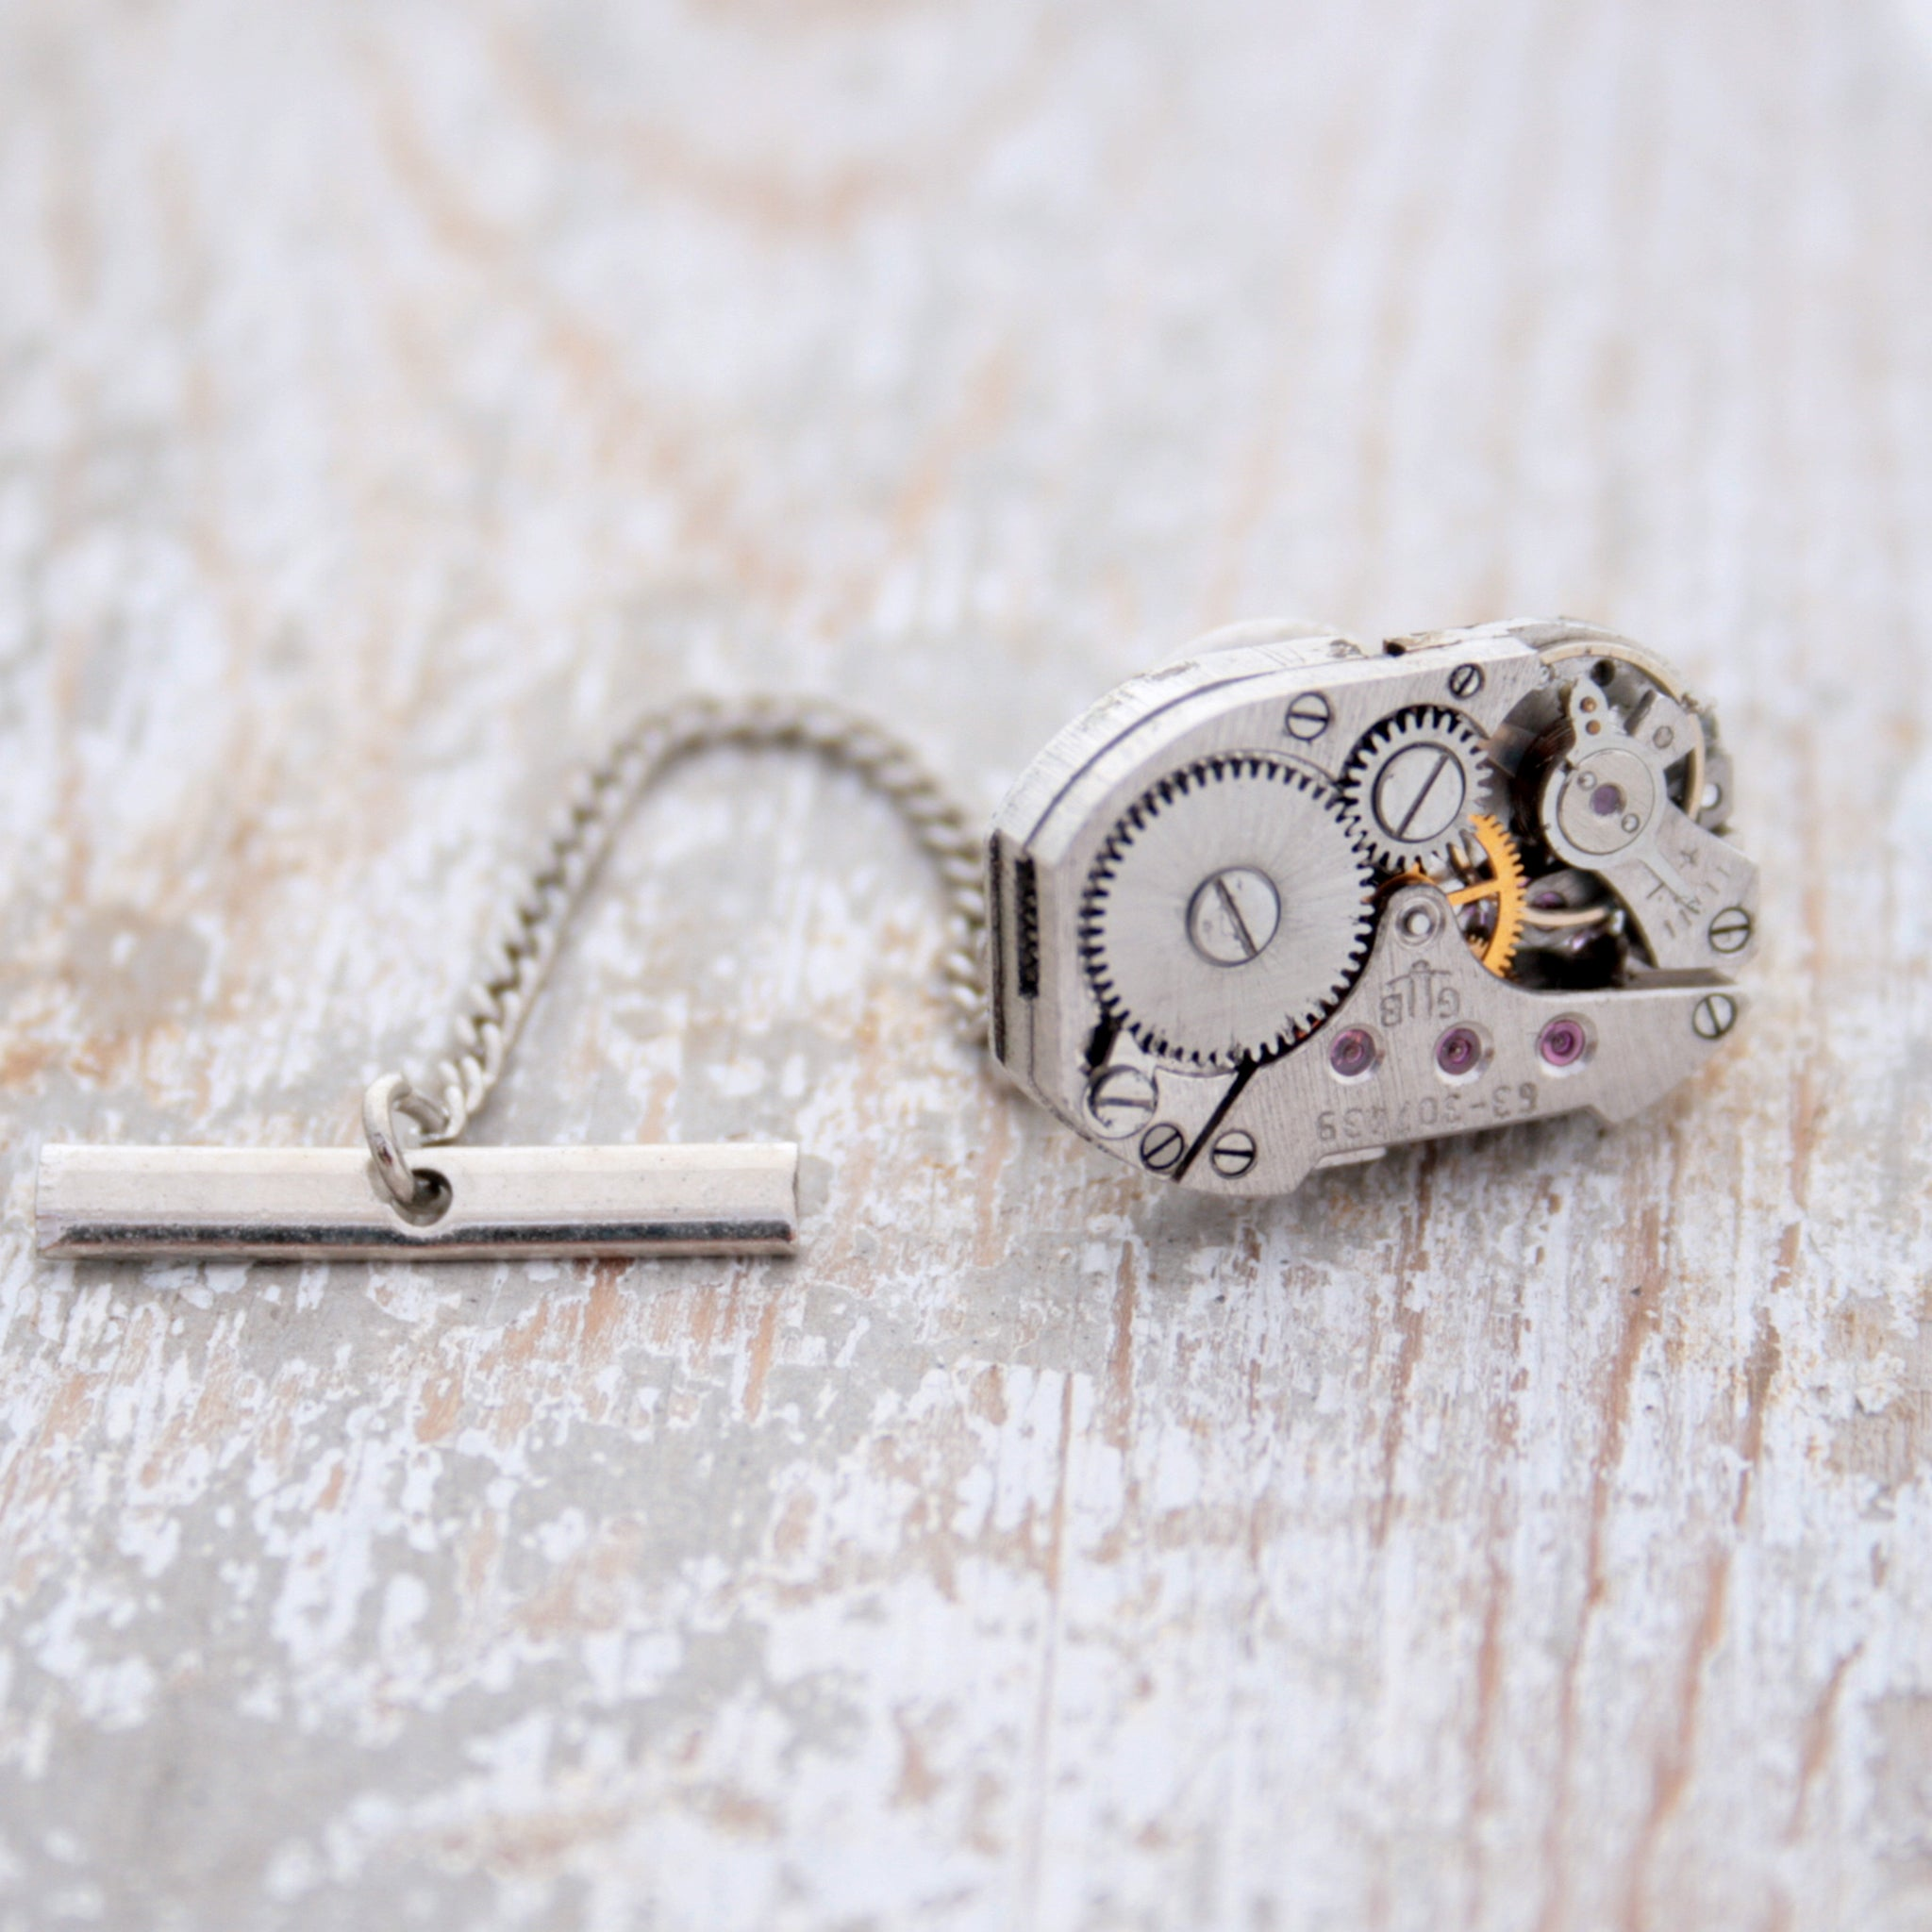 Tie Tack with antique watch movement